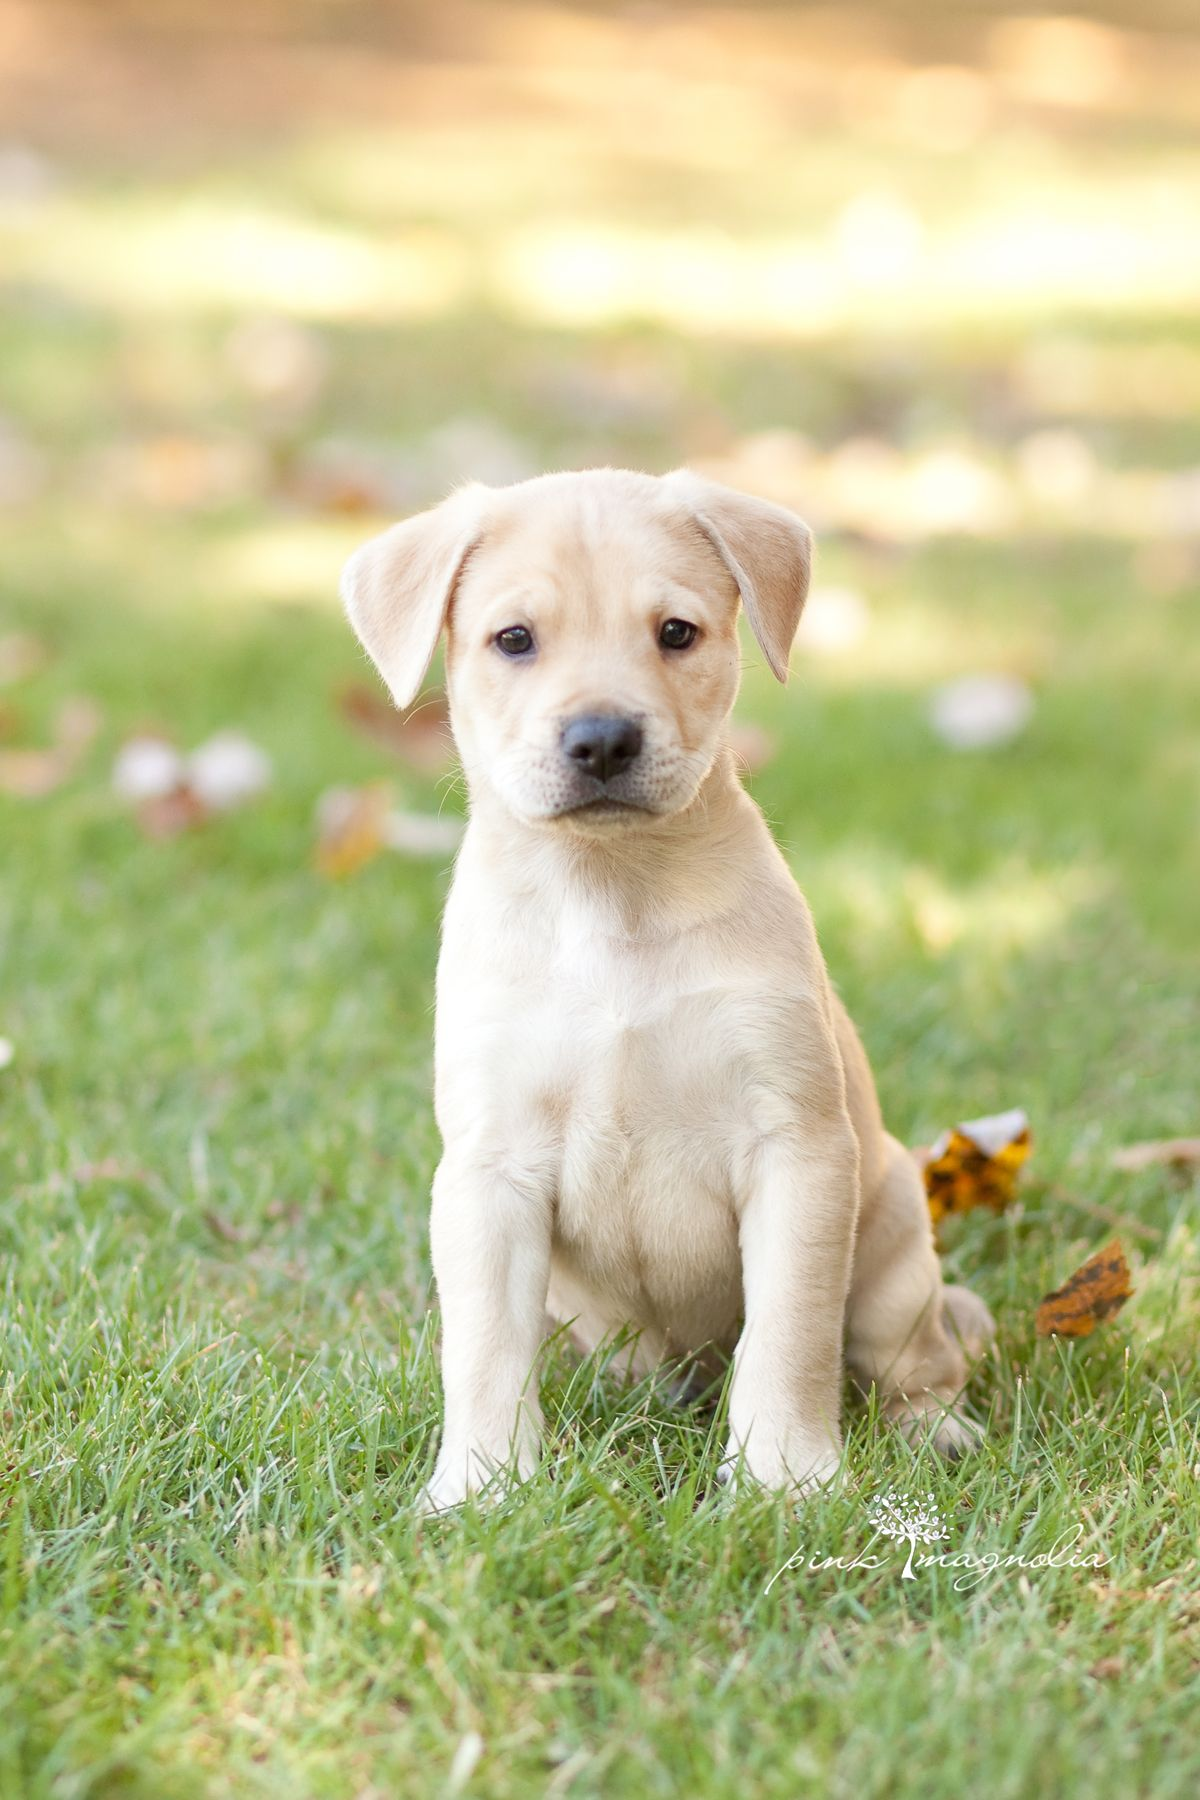 ADOPTED! Masan is an adorable lab mix puppy who is